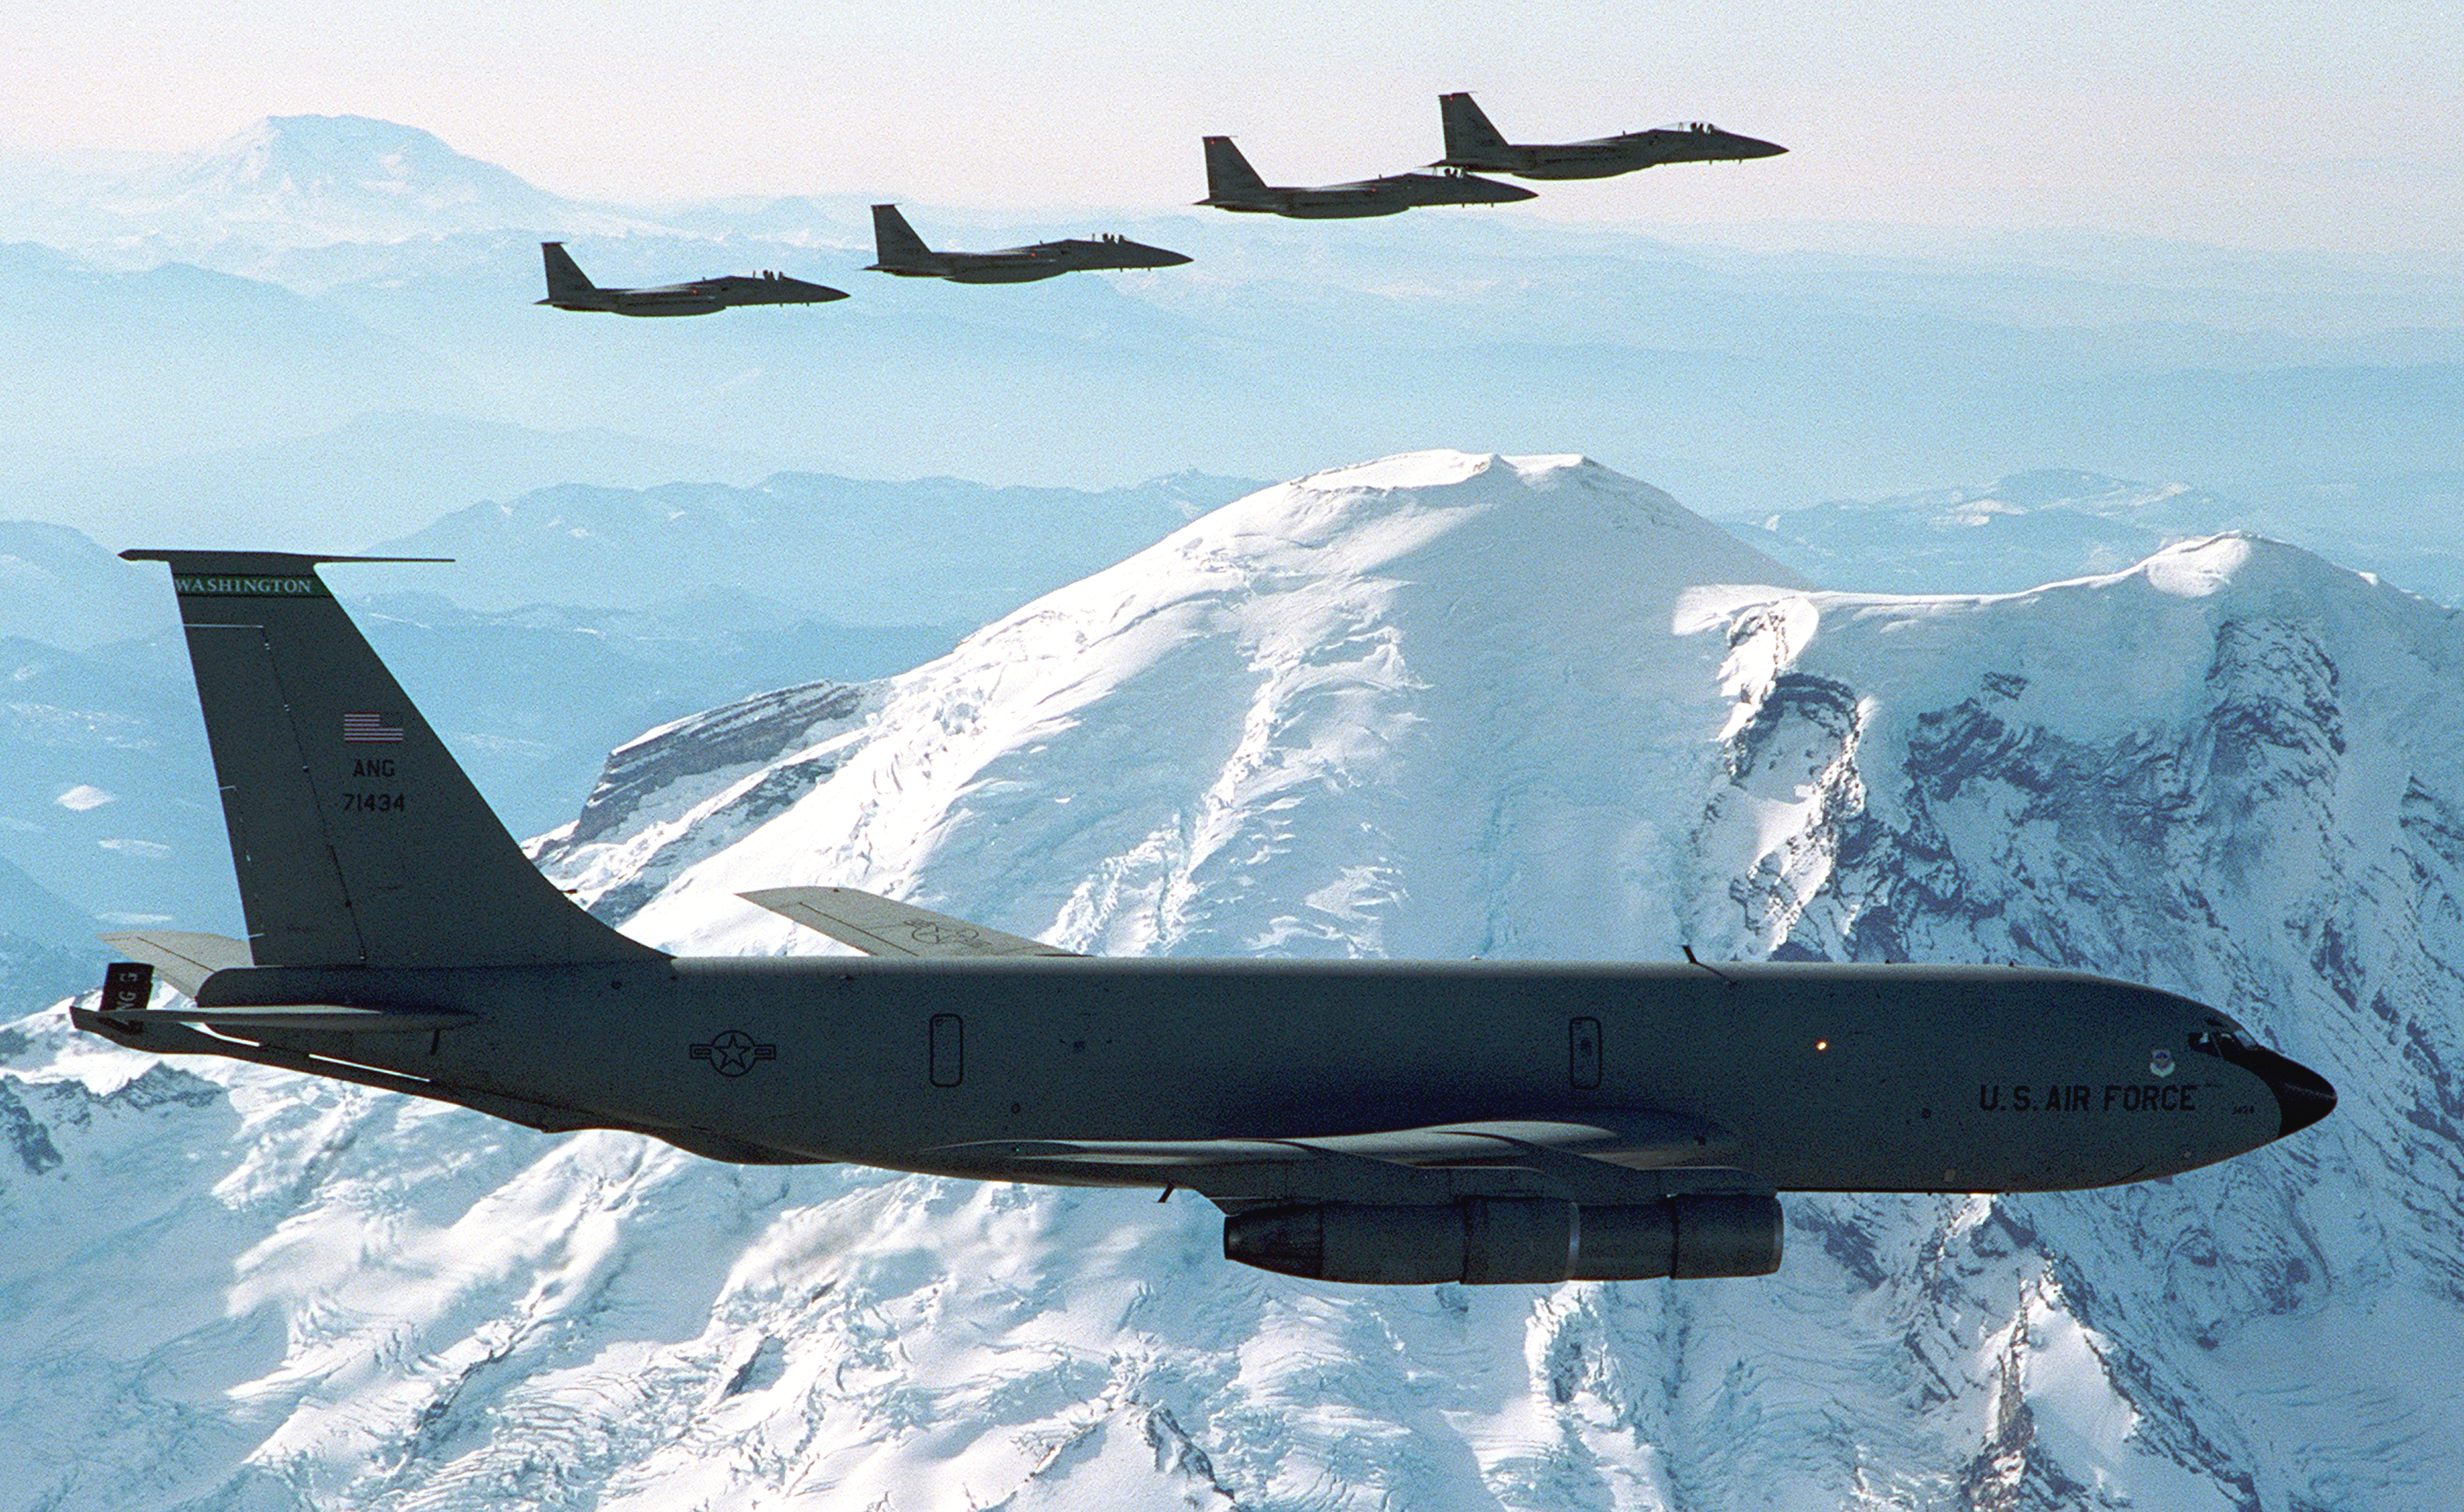 KC-135 from the Washington Air National Guard, 141st ARW was photographed by Mt. Rainier on 22 Nov 00. F-15s from the 142nd Fighter Wing, Oregon Air National Guard are in the background.